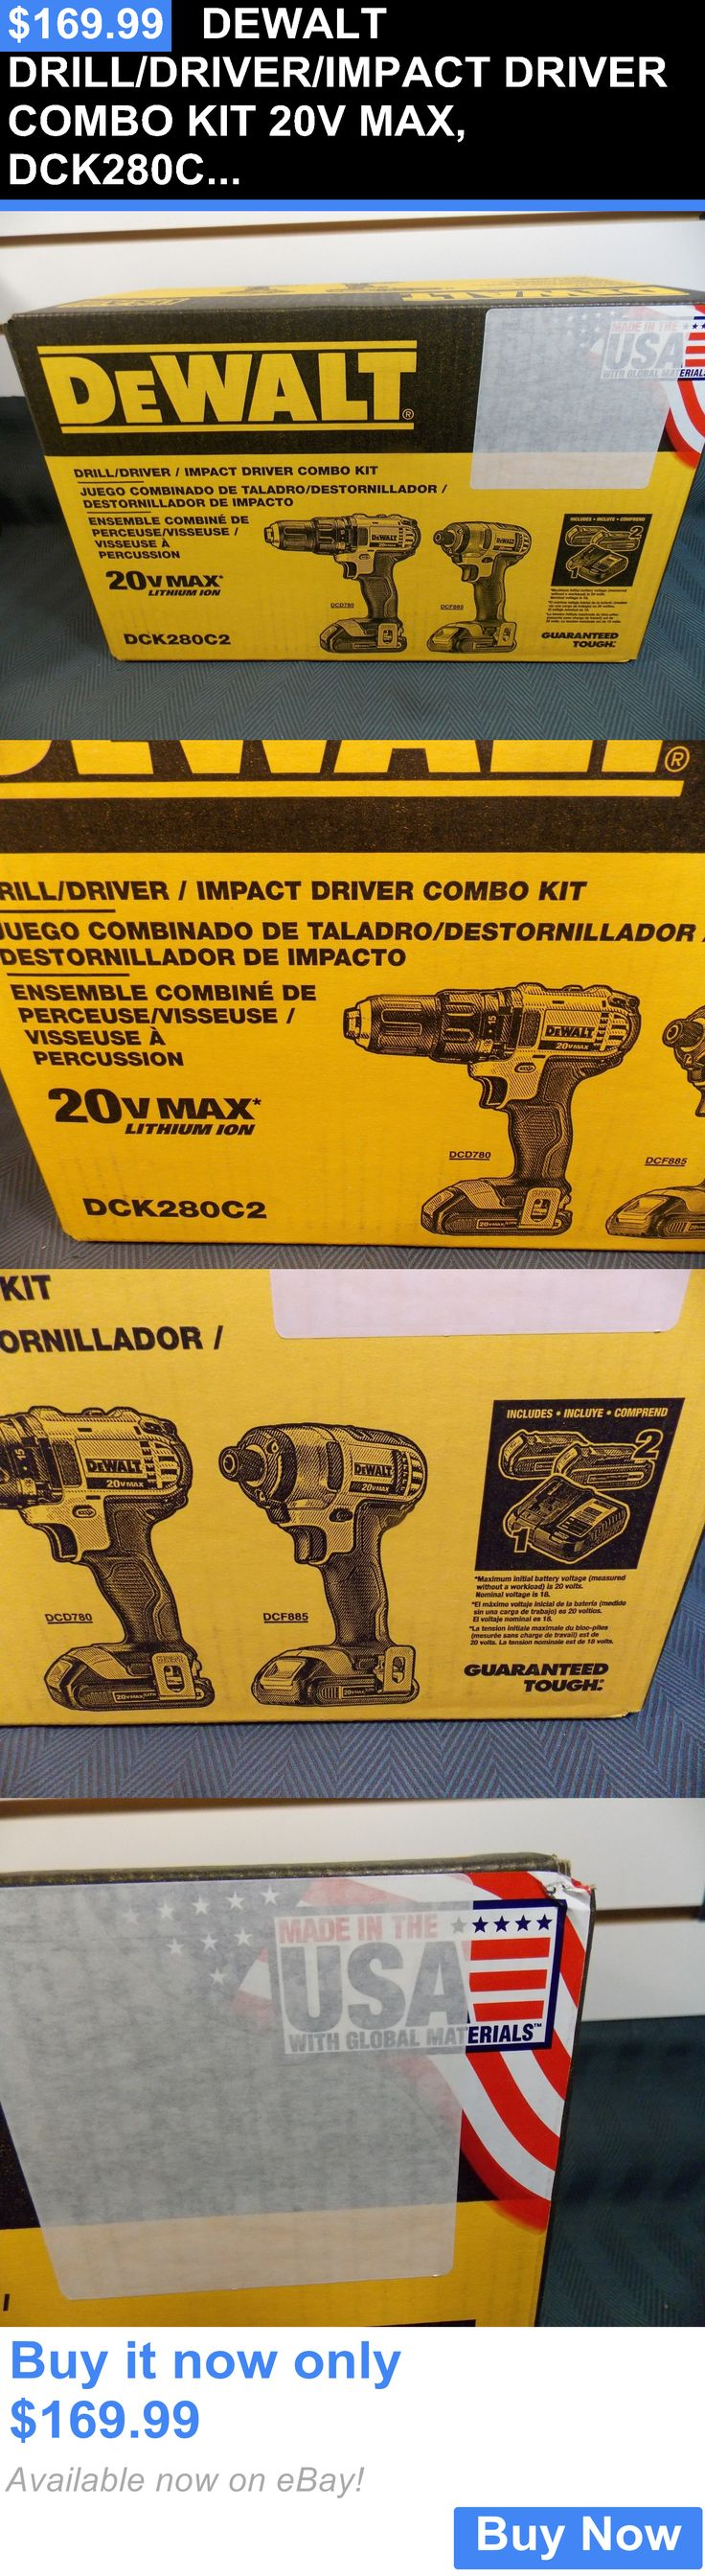 tools: Dewalt Drill/Driver/Impact Driver Combo Kit 20V Max, Dck280c2 BUY IT NOW ONLY: $169.99